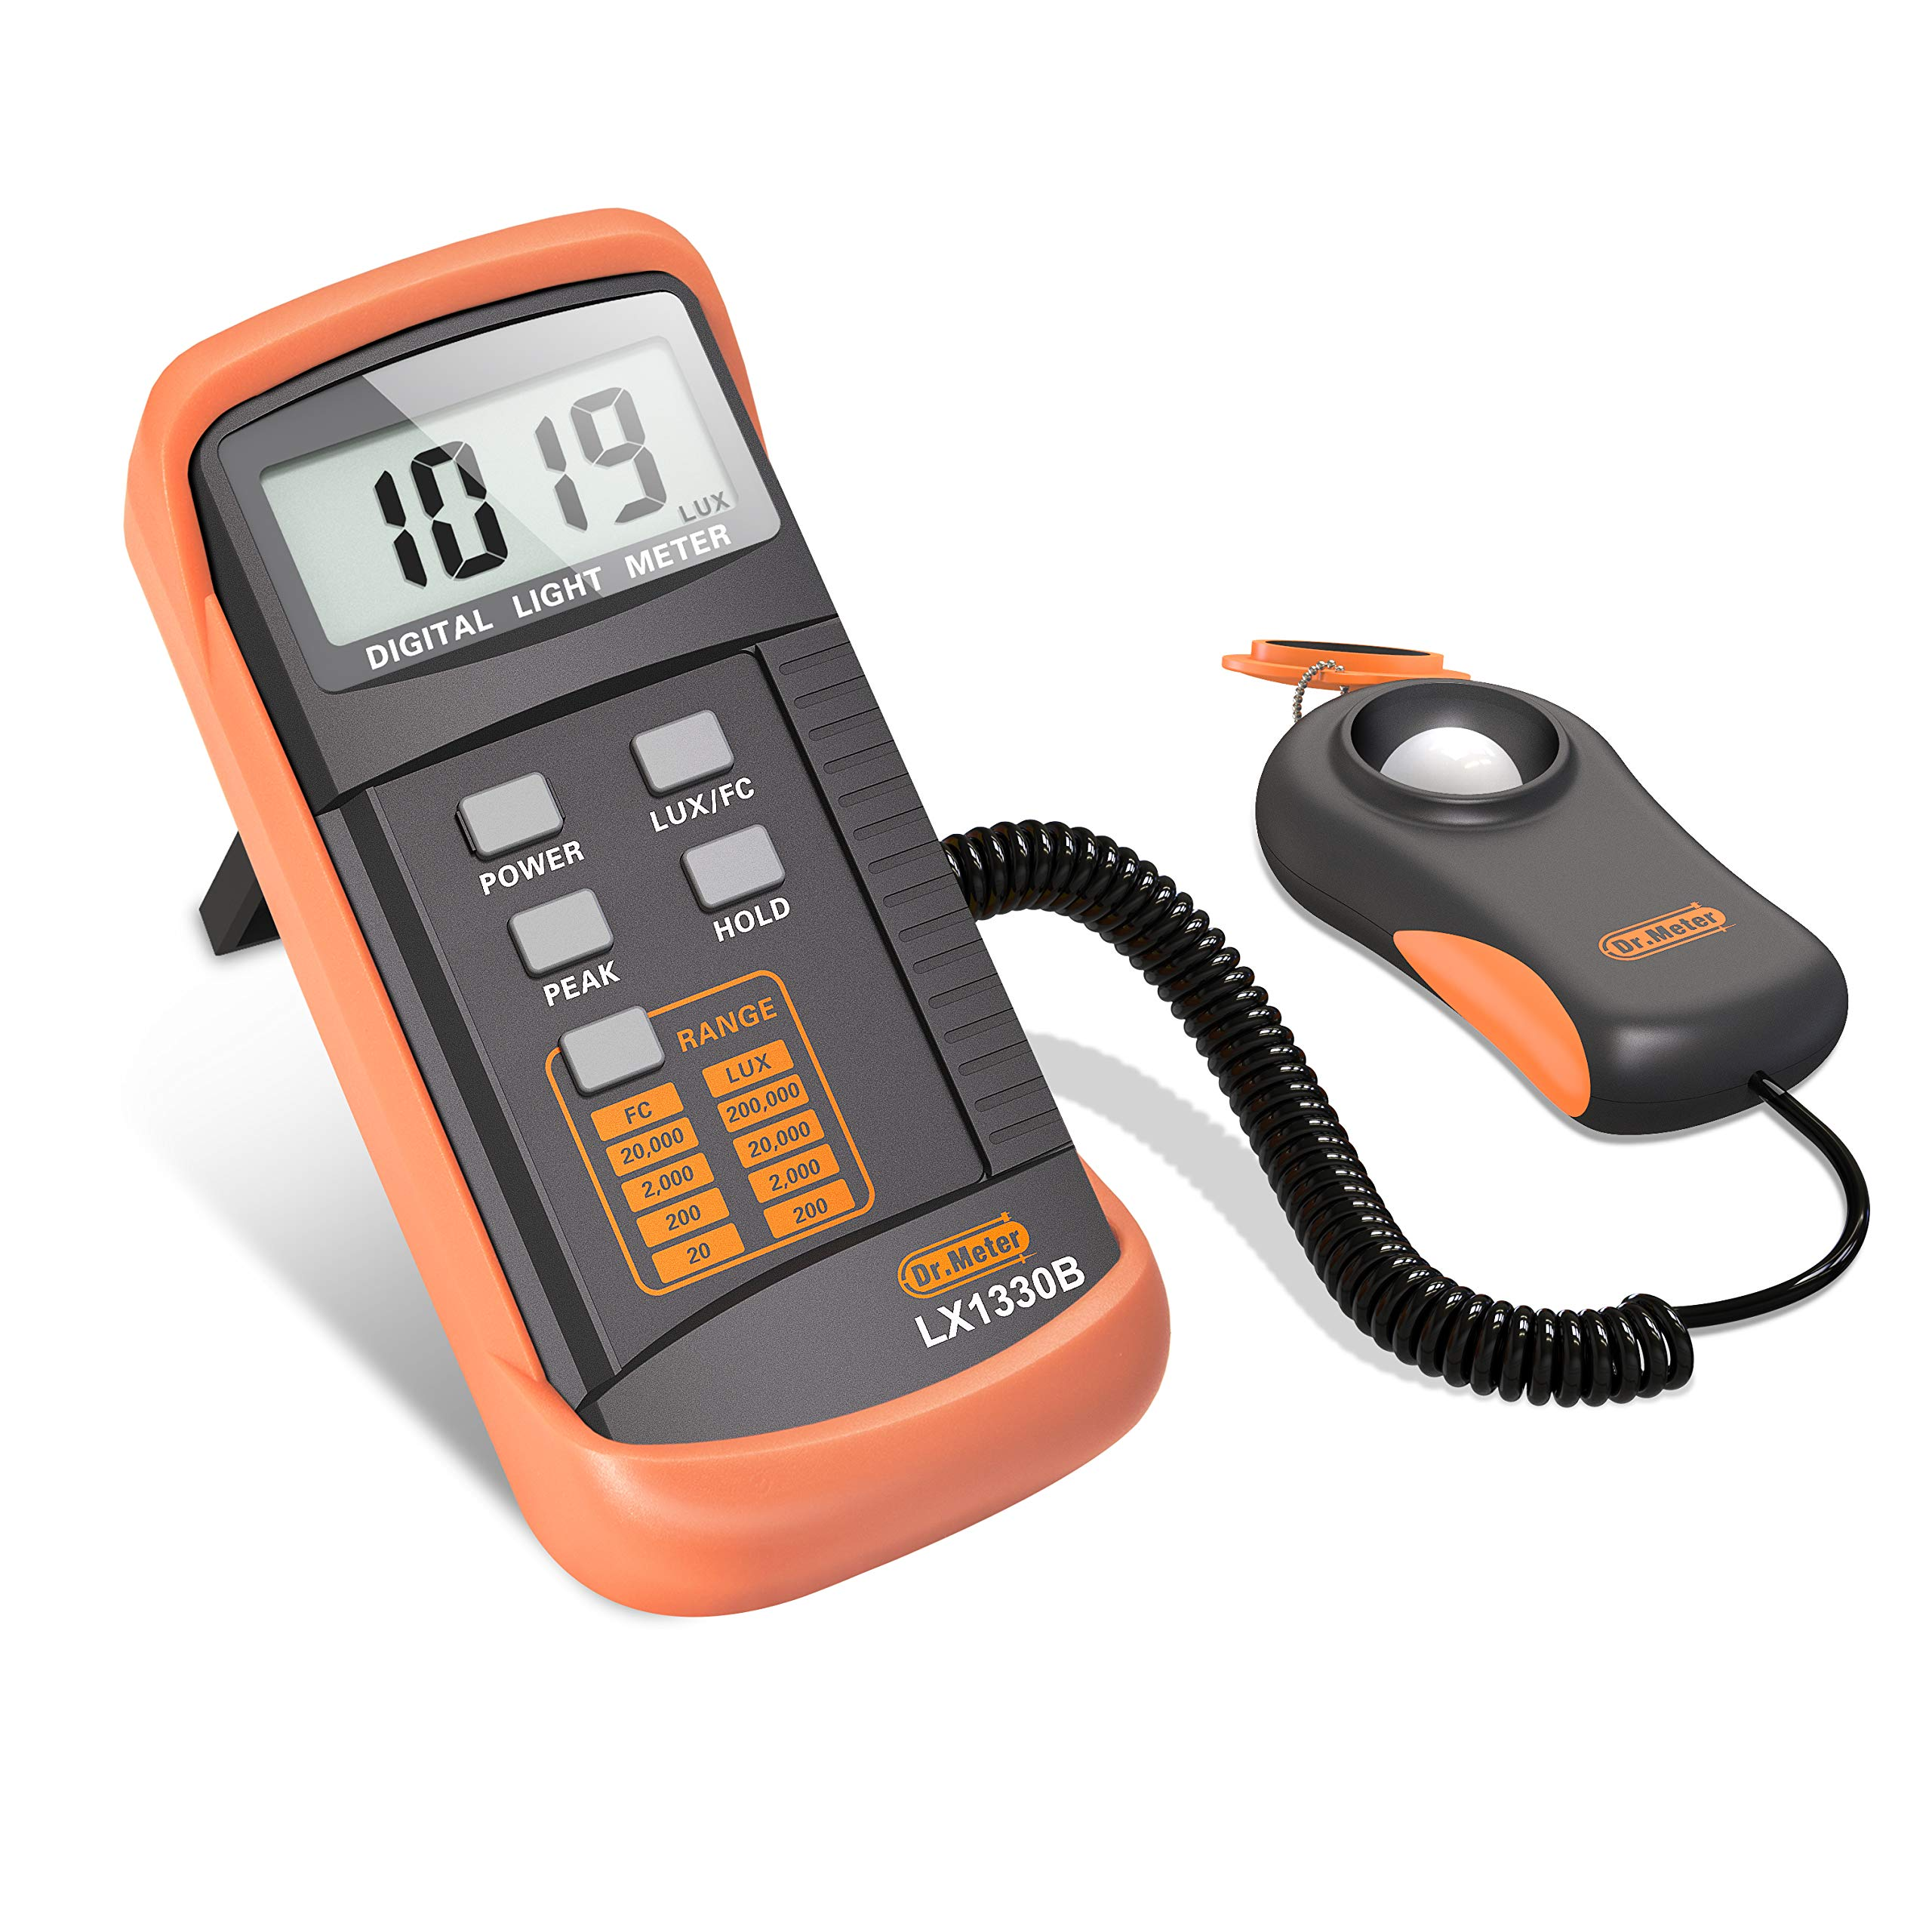 Dr.Meter LX1330B Digital Illuminance/Light Meter, 0 - 200,000 Lux Luxmeter by Dr.meter